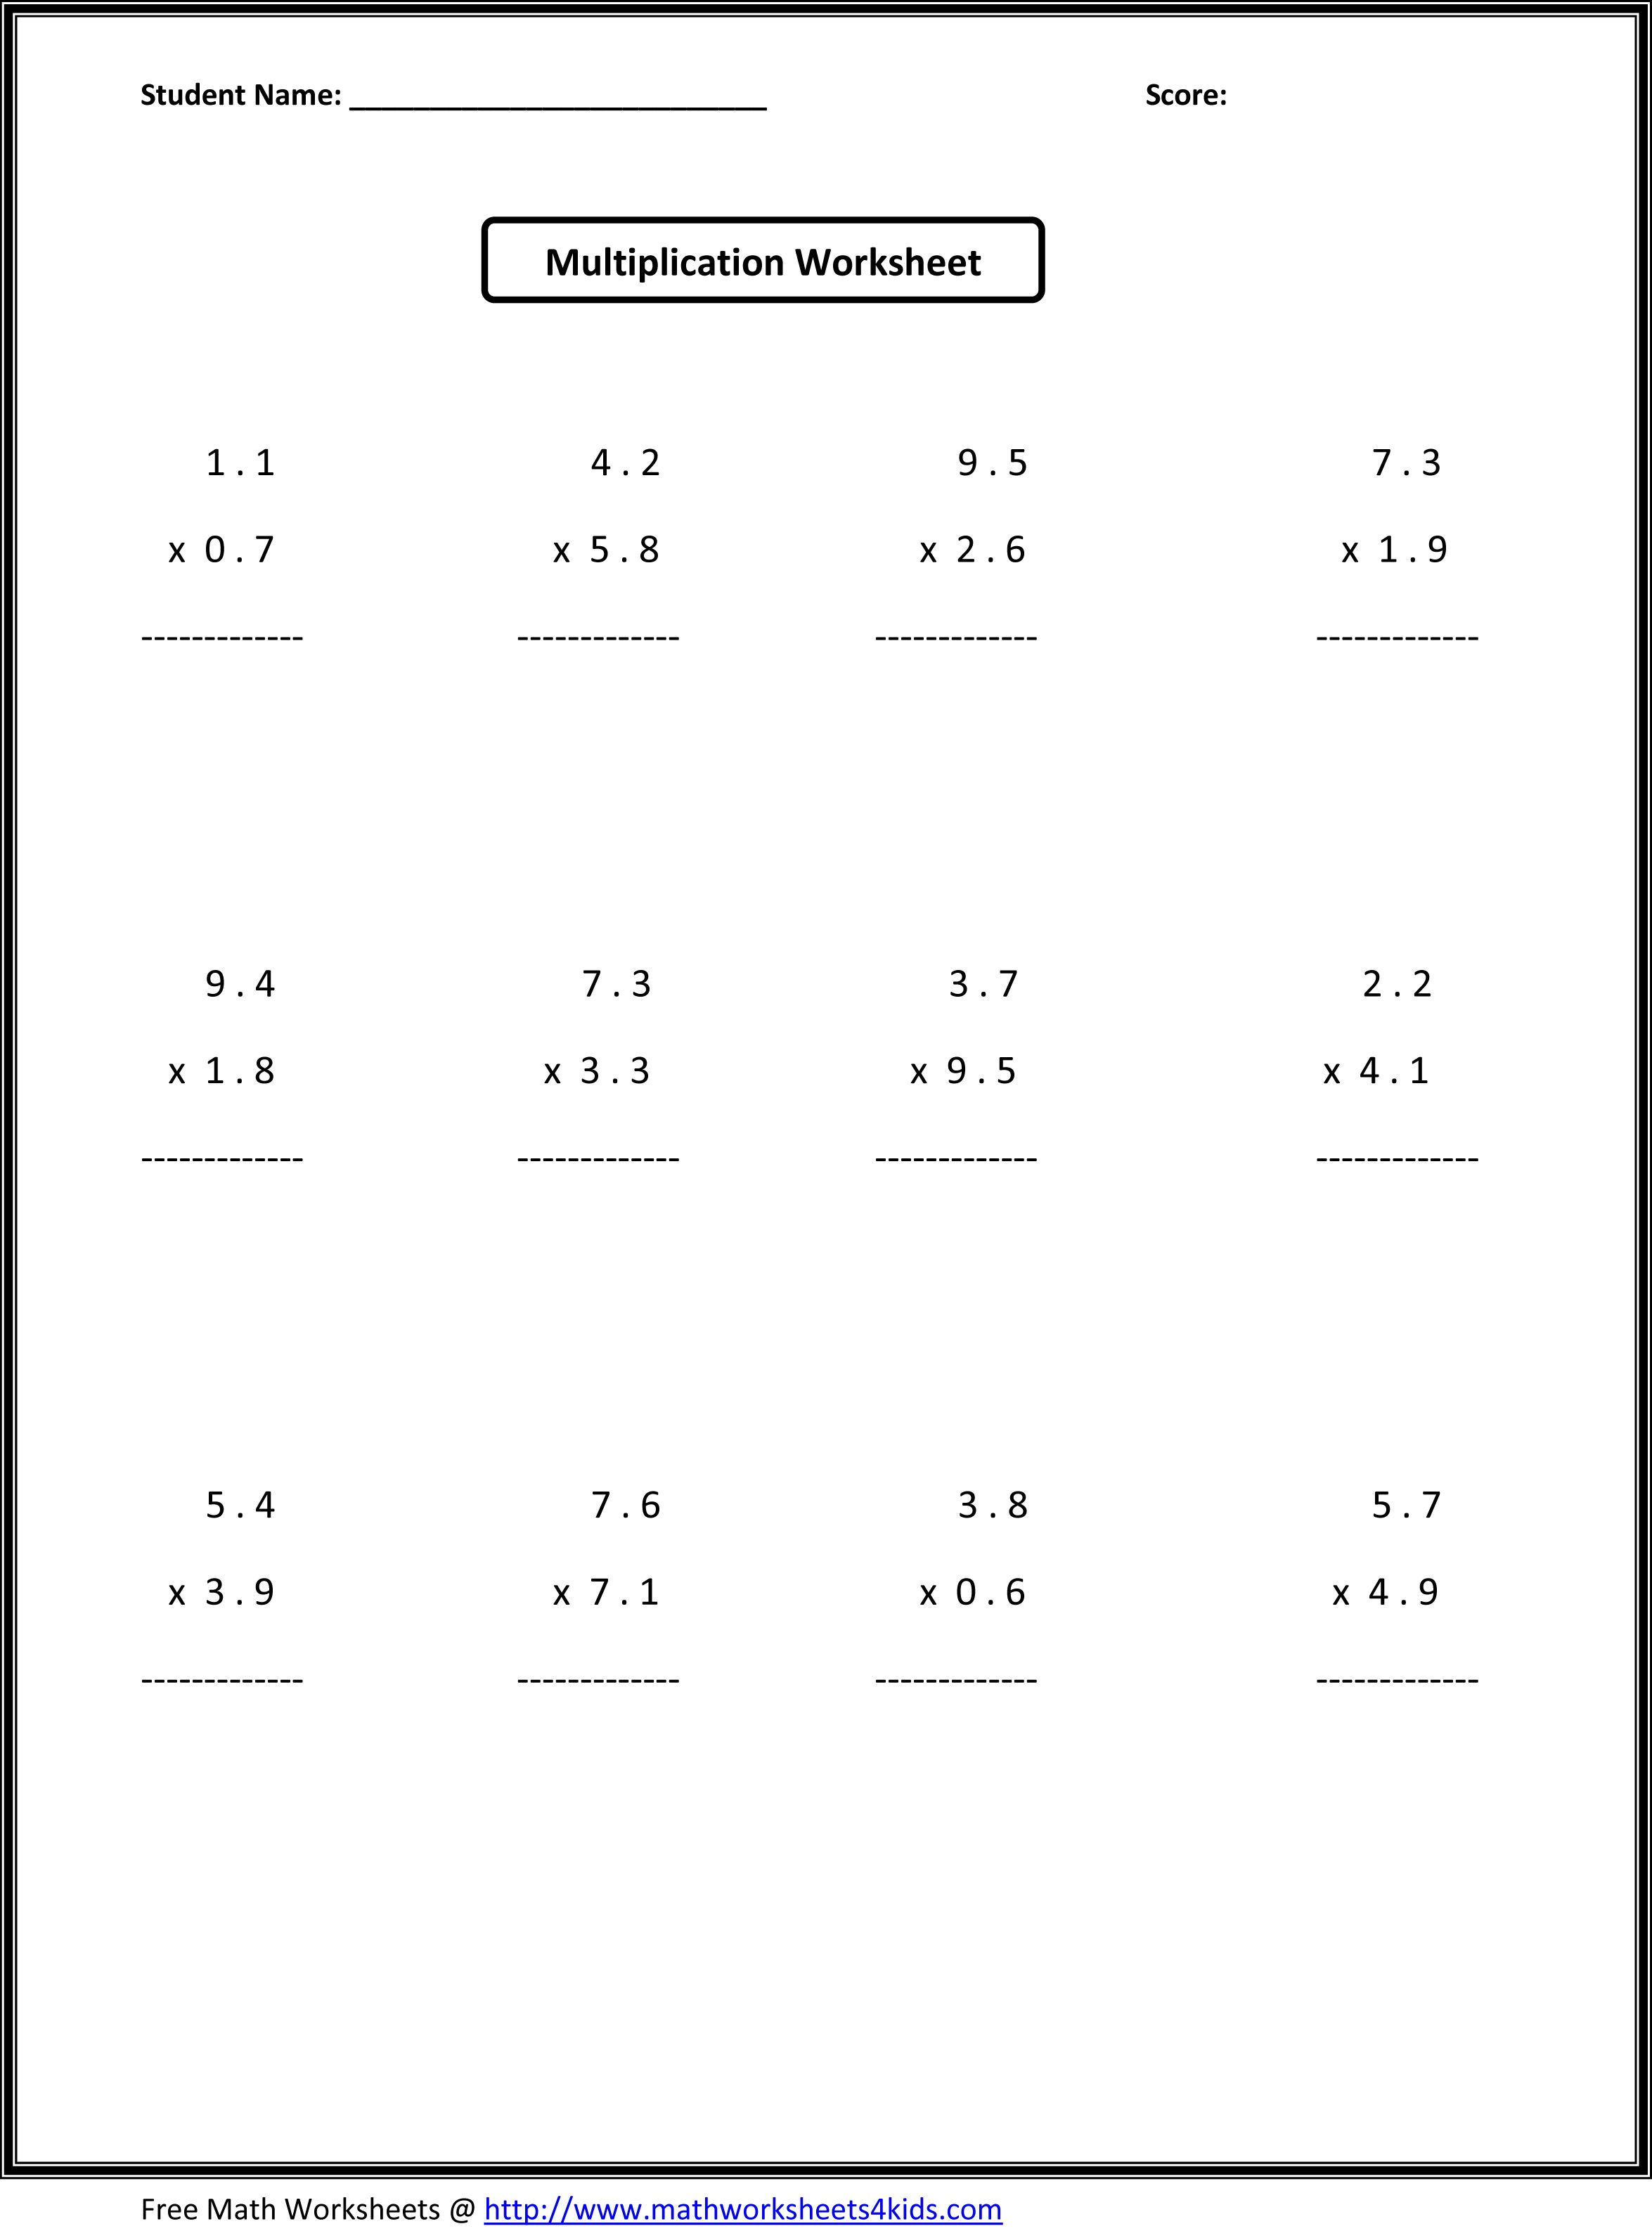 Worksheets Math Worksheet For 6th Grade 7th grade math worksheets value absolute sixth have ratio multiplying and dividing fractions